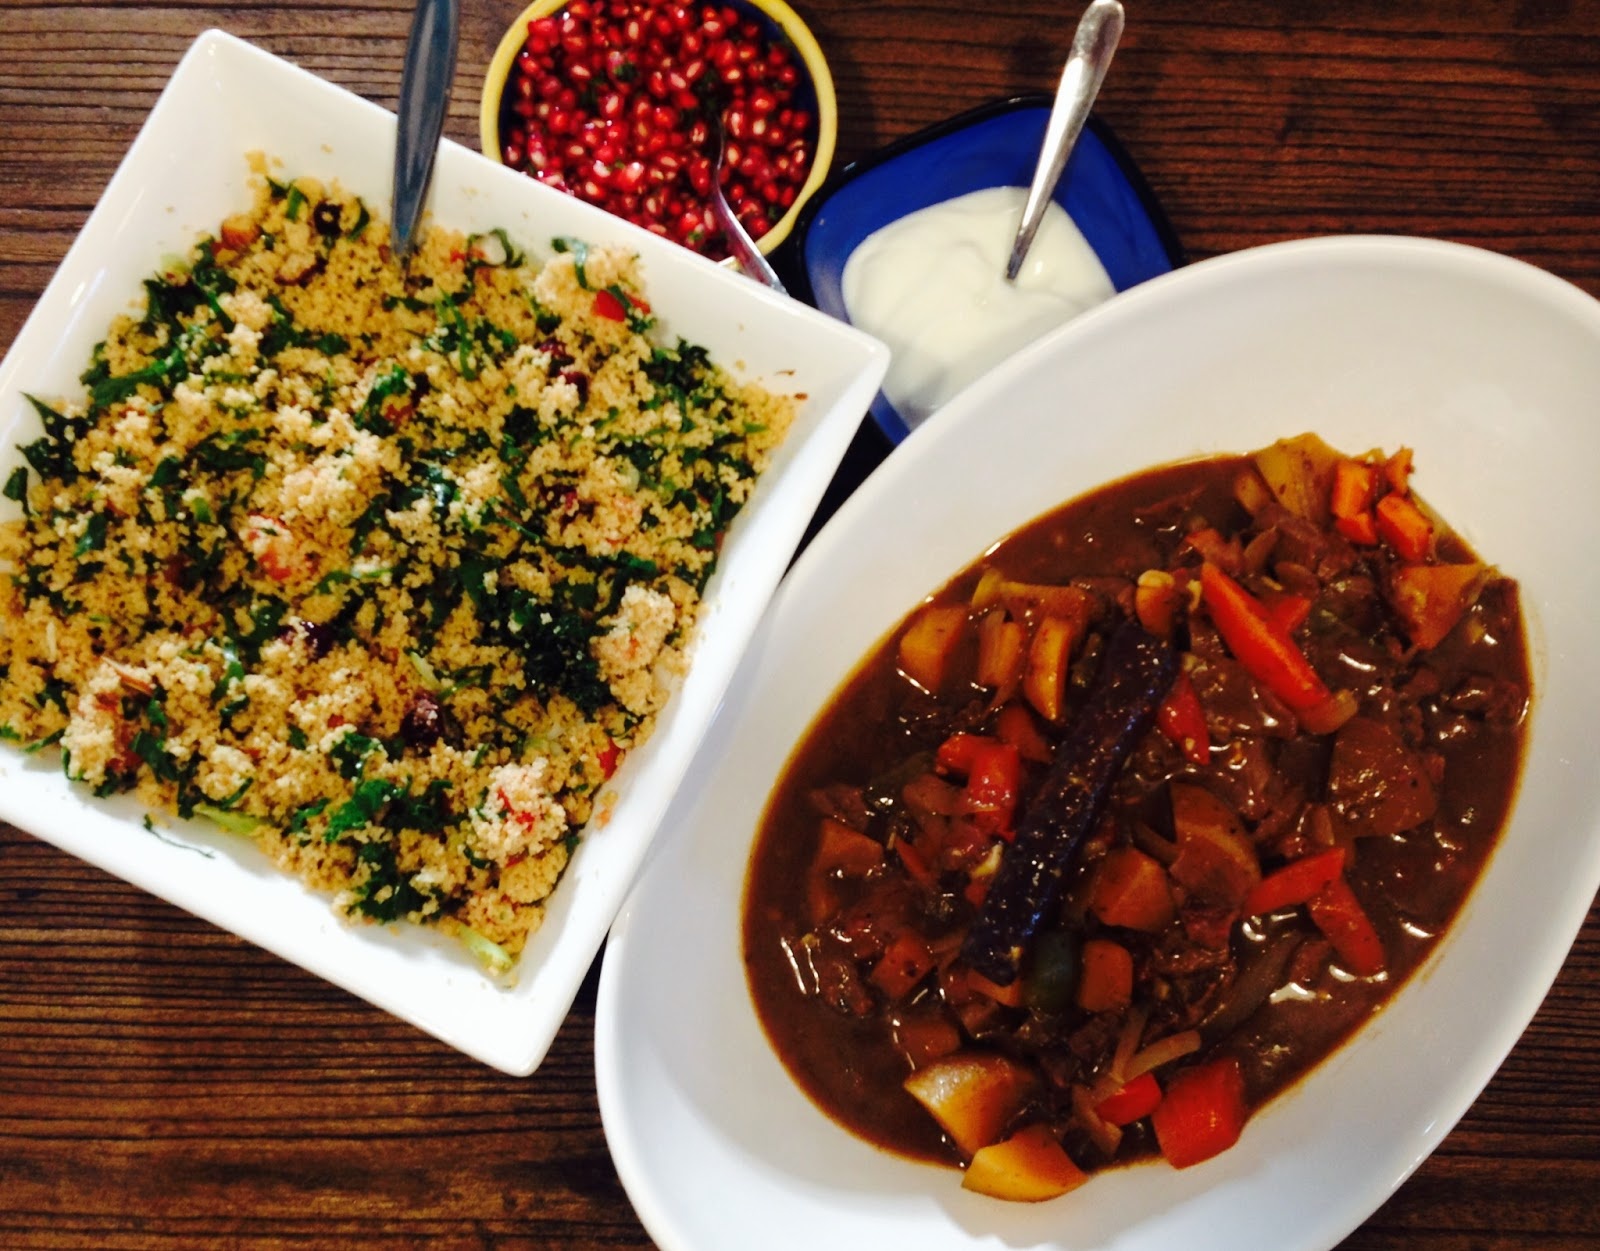 Couscous with Lamb, Almonds and Pomegranate Seeds